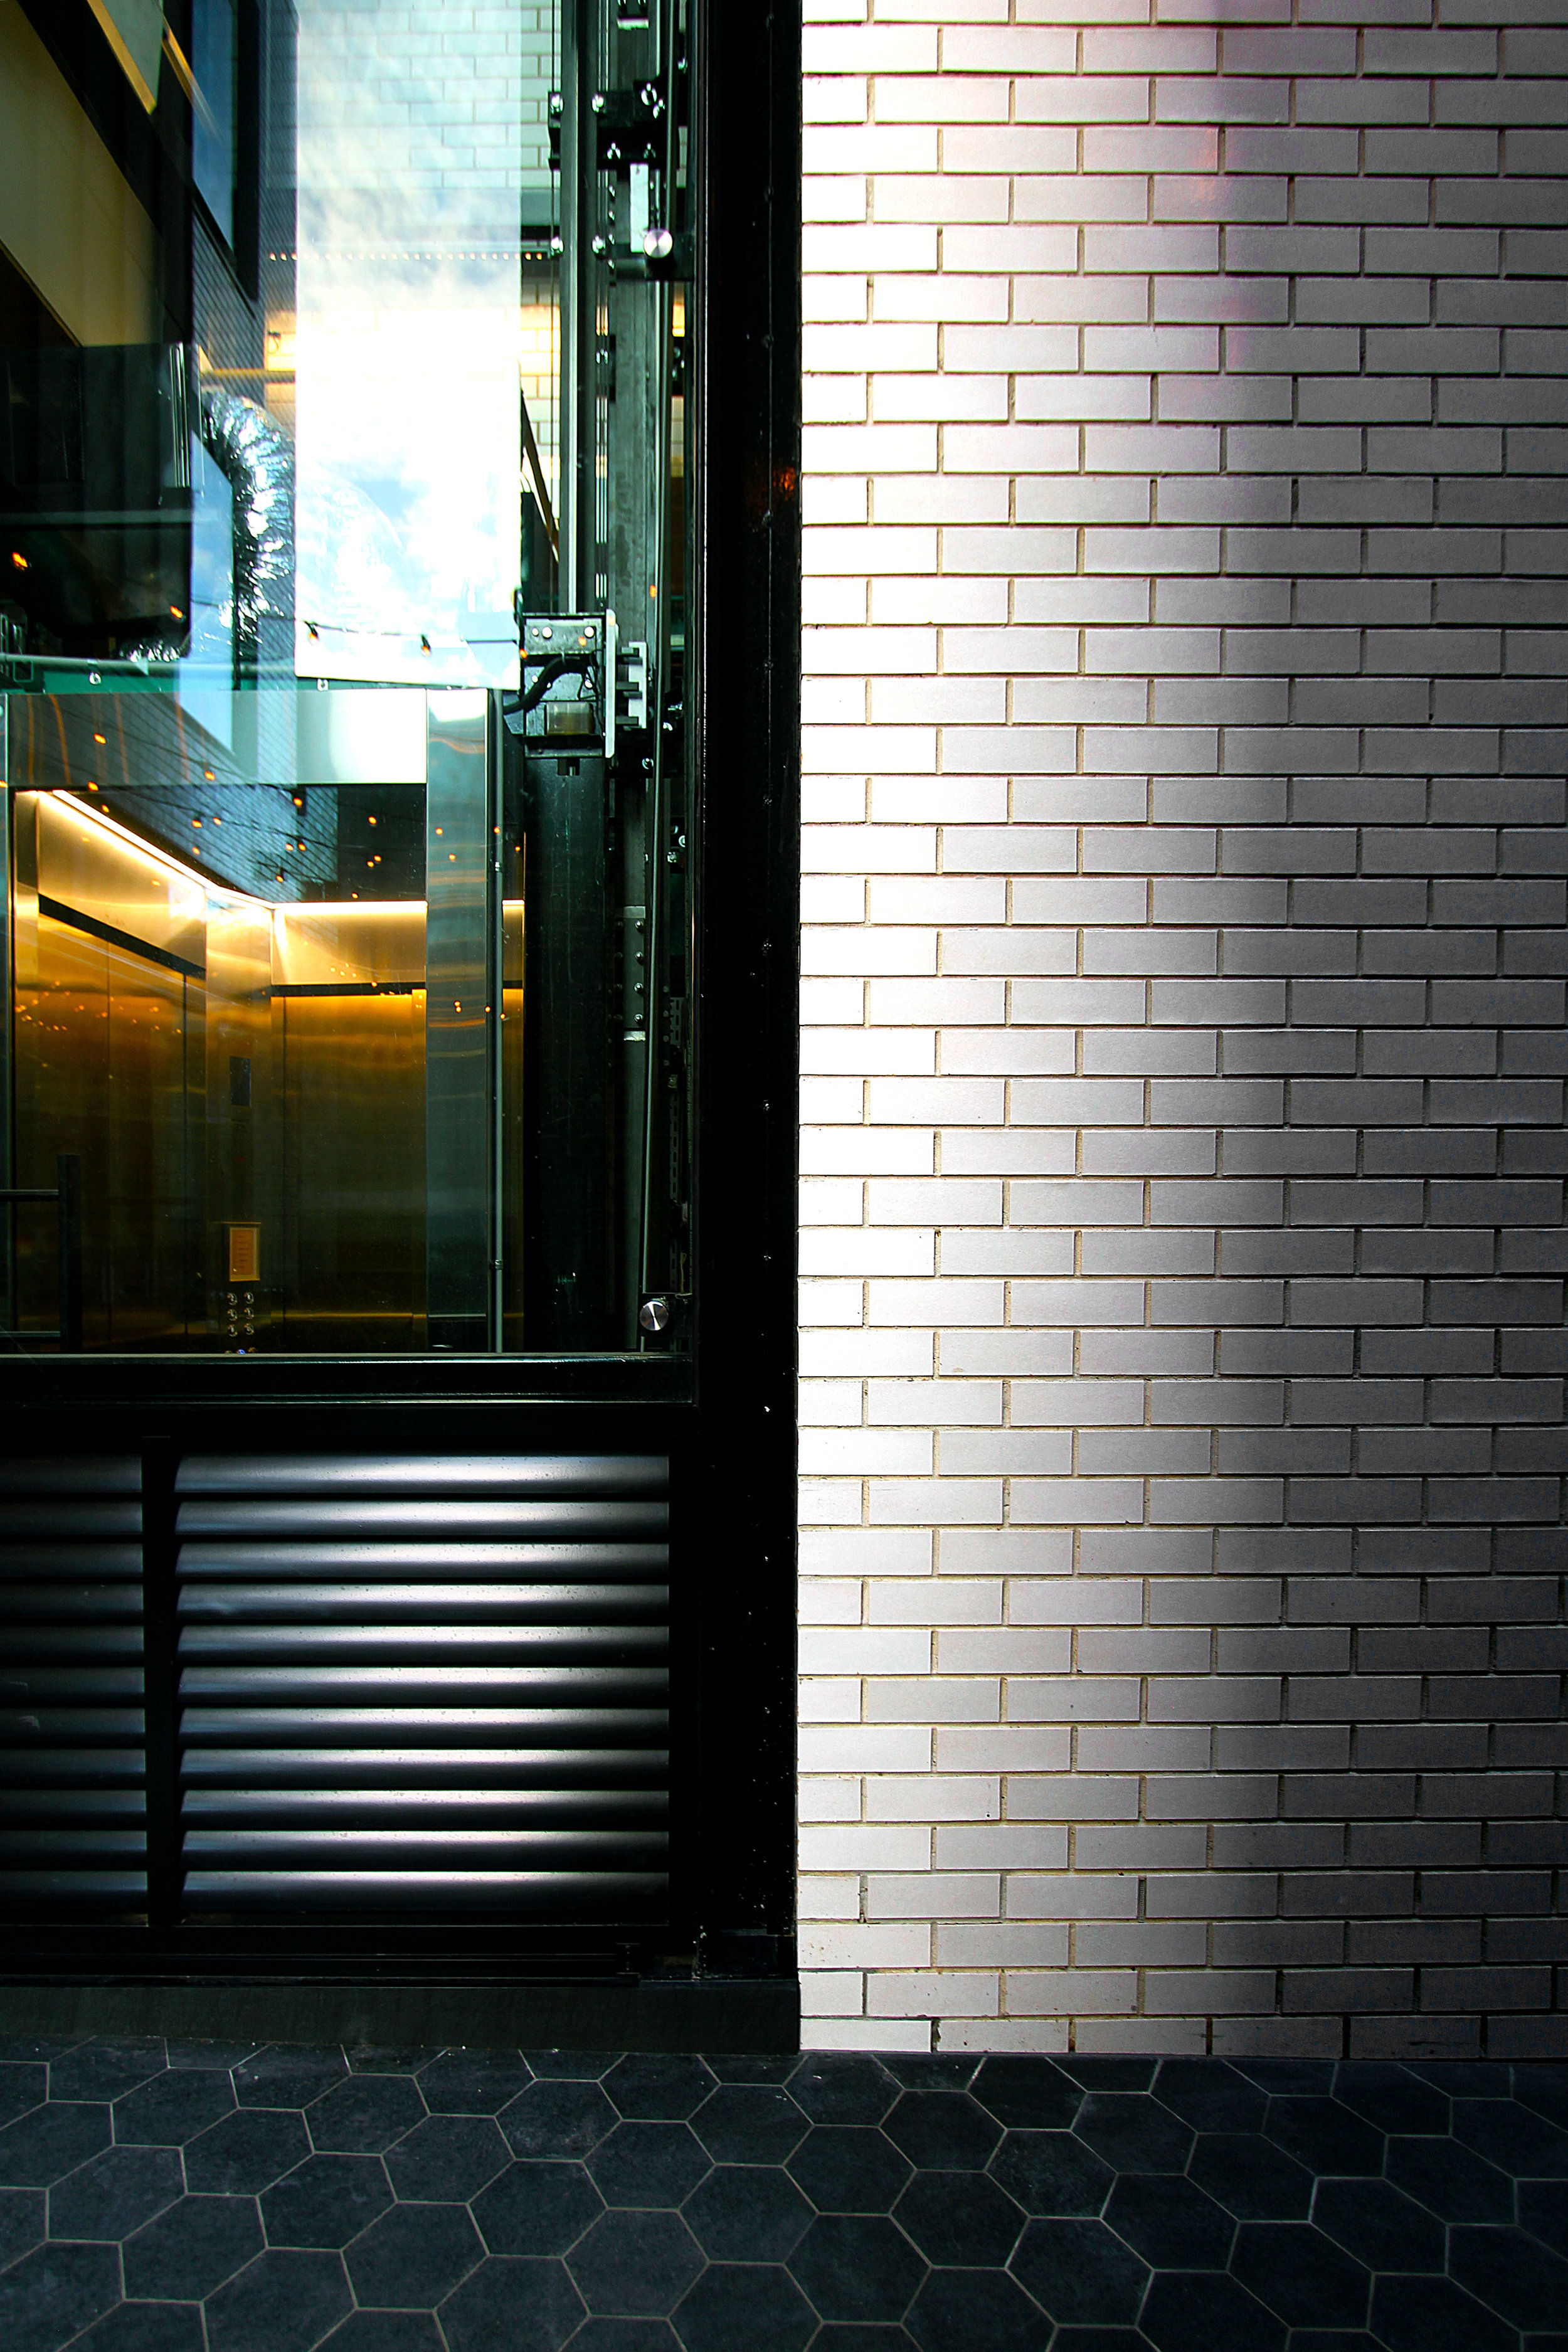 TYA Photography | Little Albion Guest House | Glass Steel and Brickwork | Winter | Morning 01 | A8080.jpg